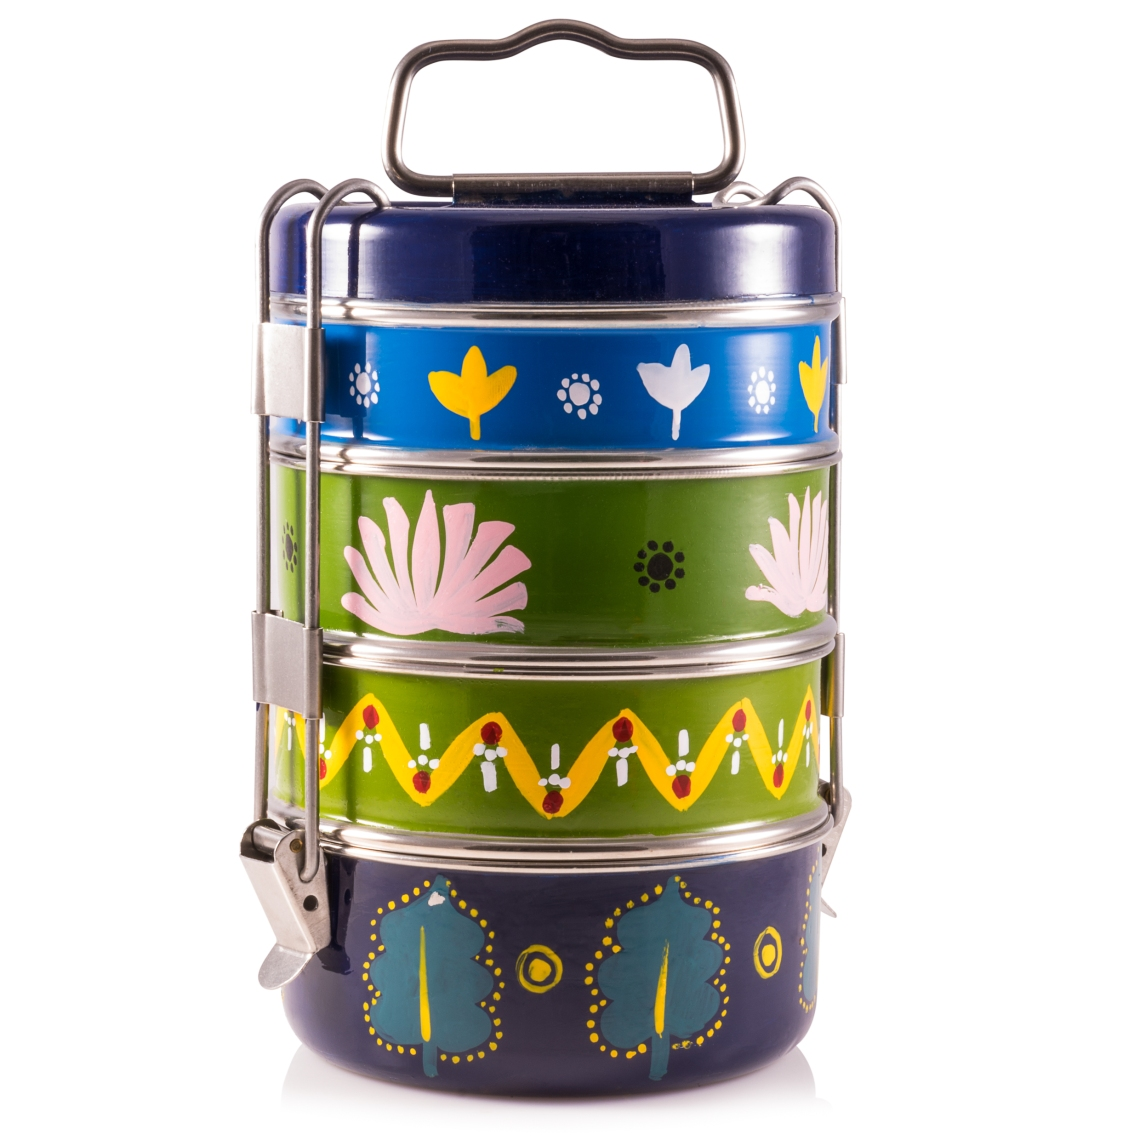 Hand painted tiffin from Indian Tiffin